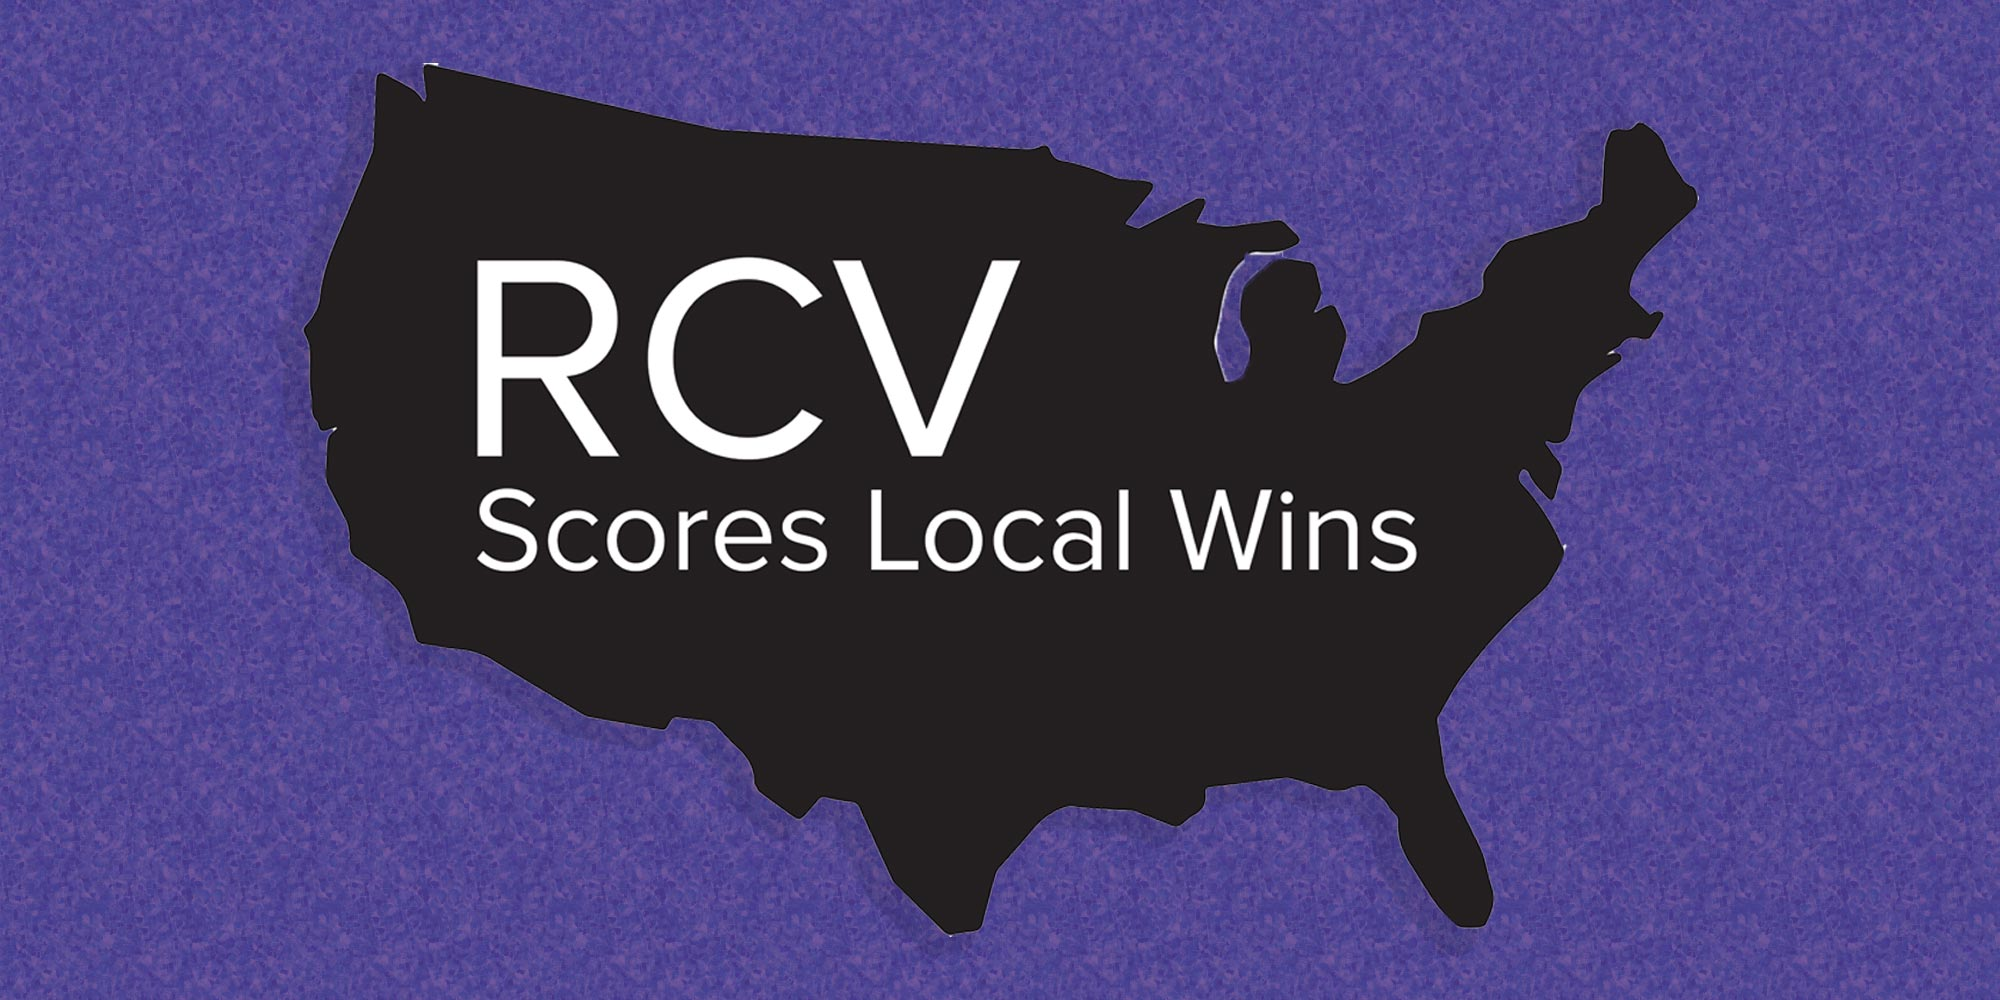 Regardless of Party, Ranked Choice Voting Scores Local Wins